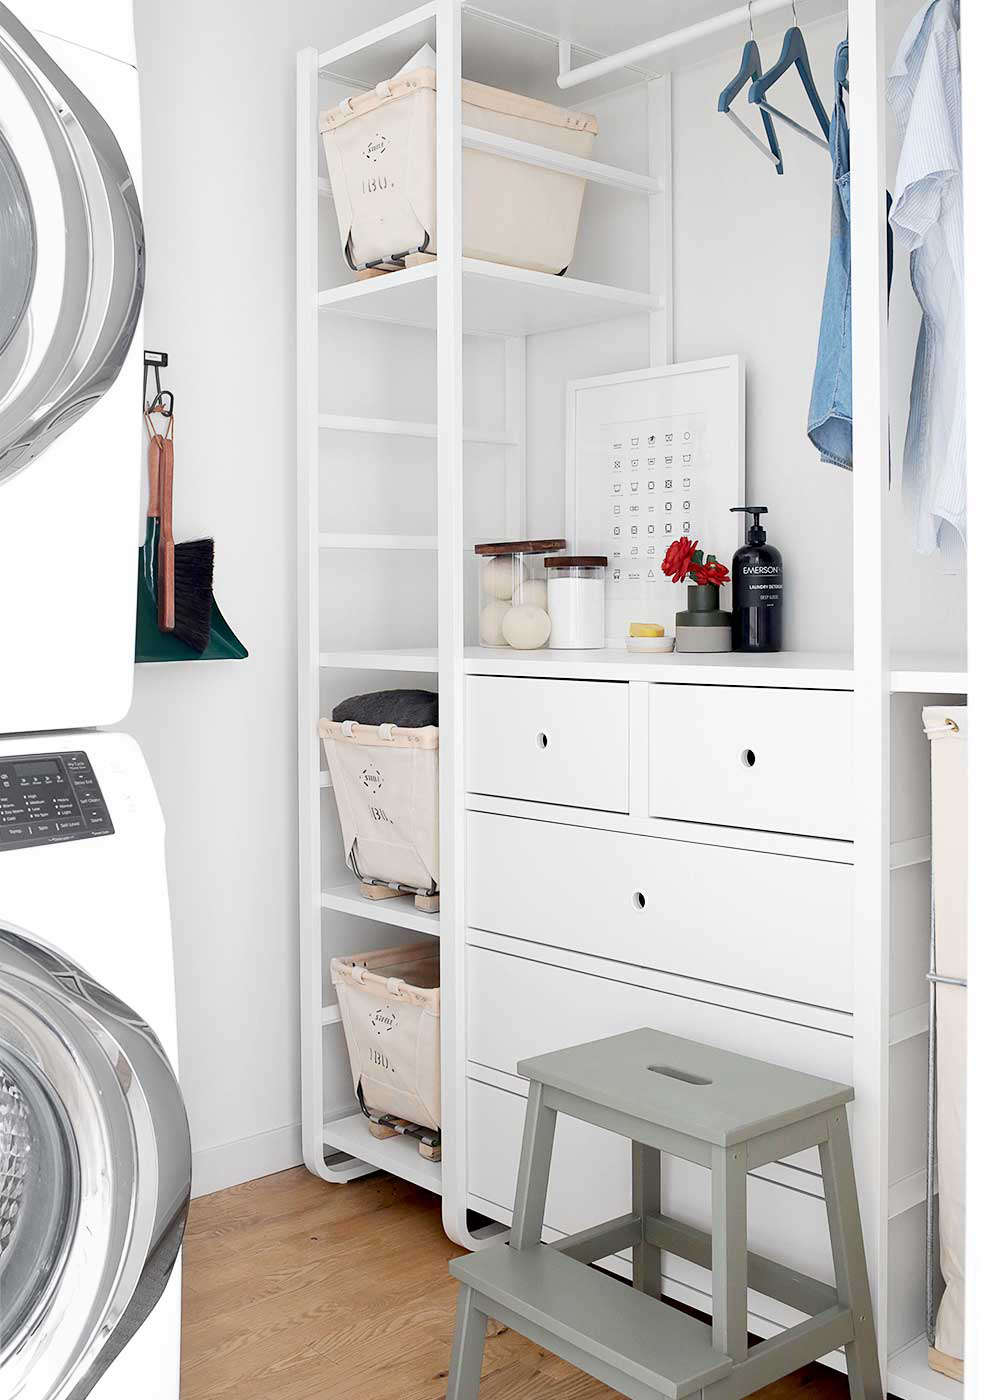 27 Favorite Laundry Rooms with Storage Ideas to Steal